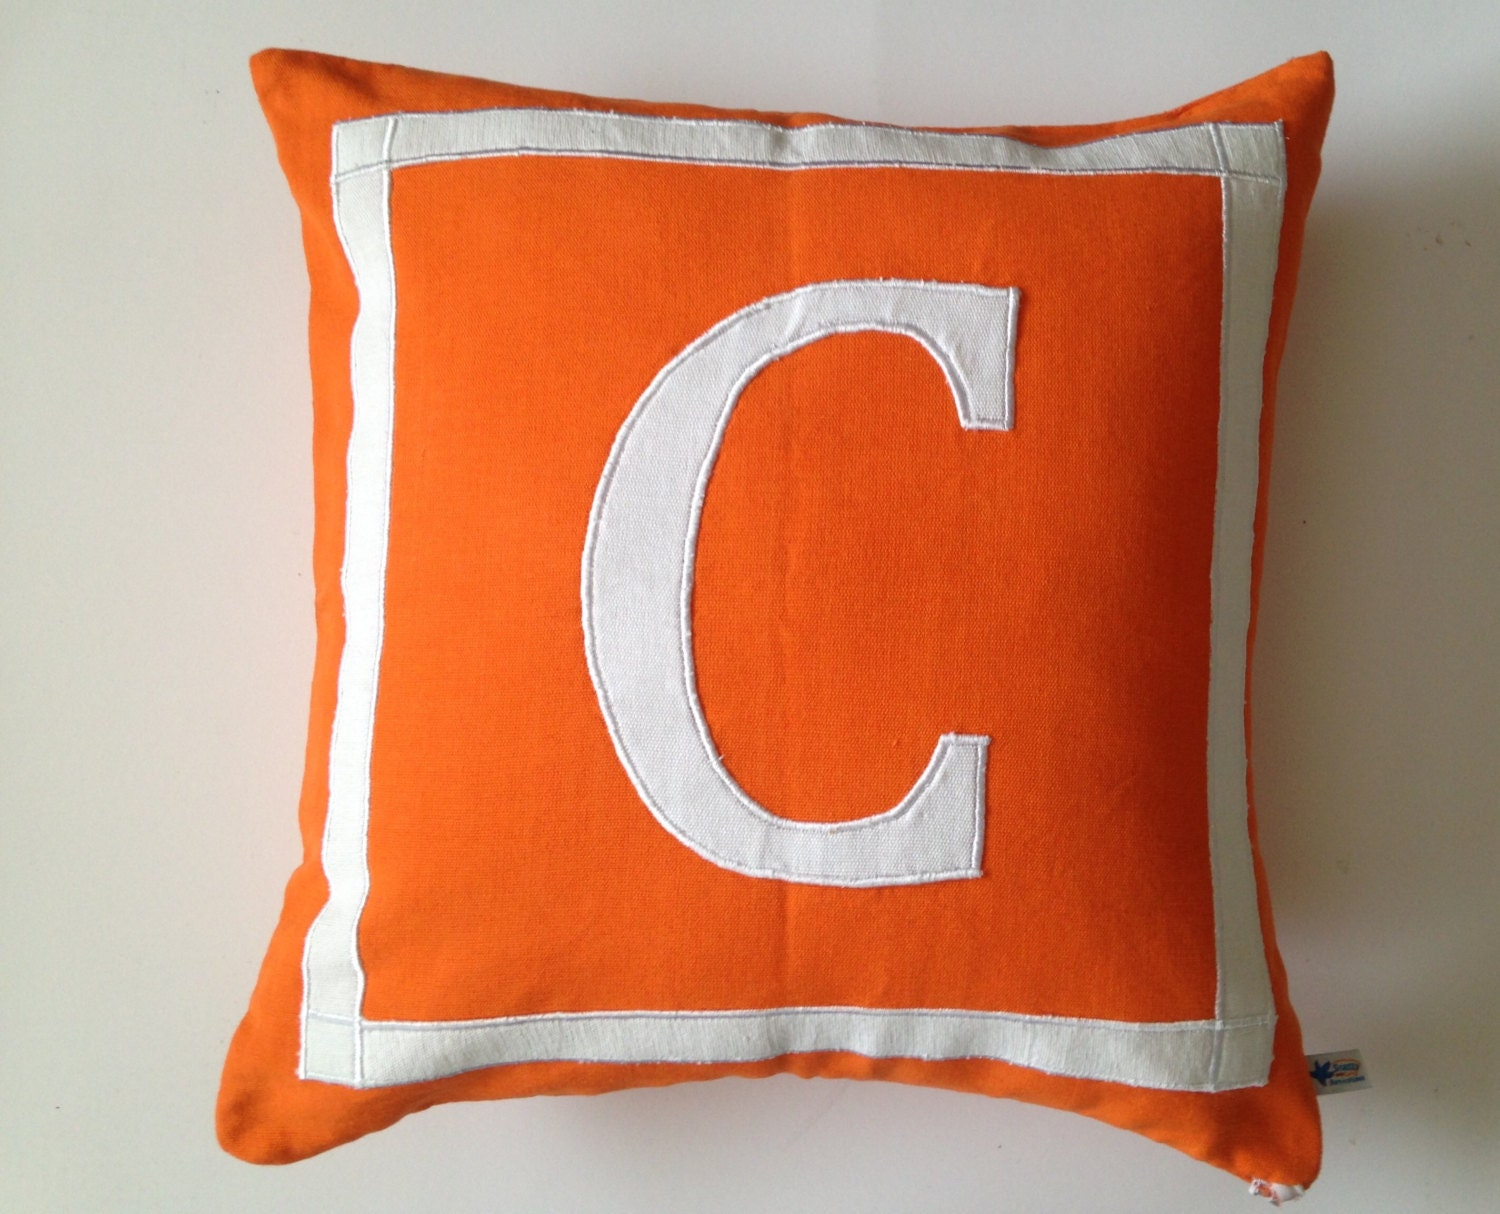 Orange And White Decorative Pillows : Gift for Women Orange White Decorative Pillow Covers Letter